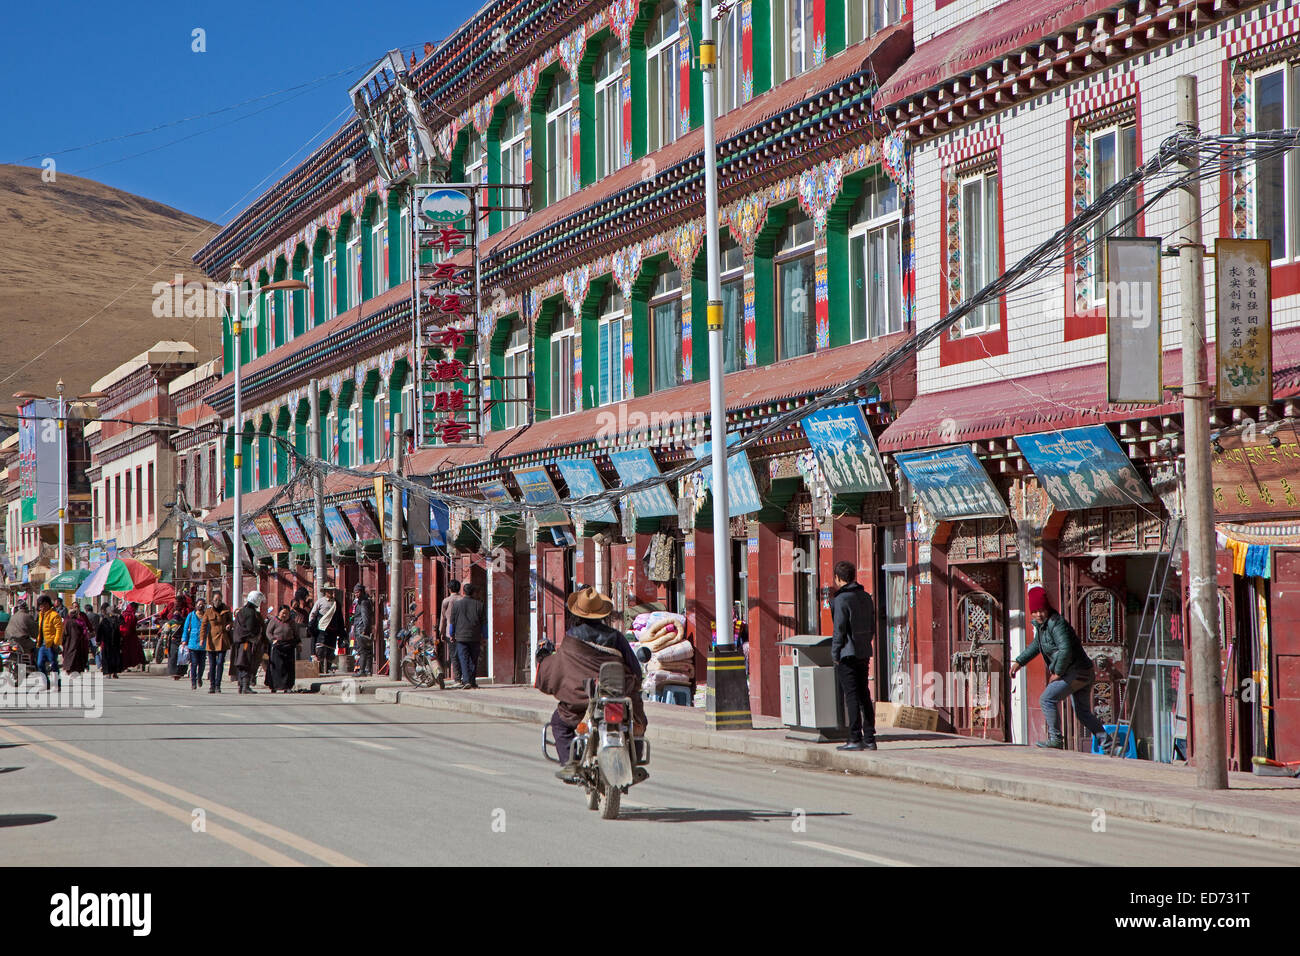 Street with shops in the village Sershu / Serxu, Sichuan Province, China - Stock Image